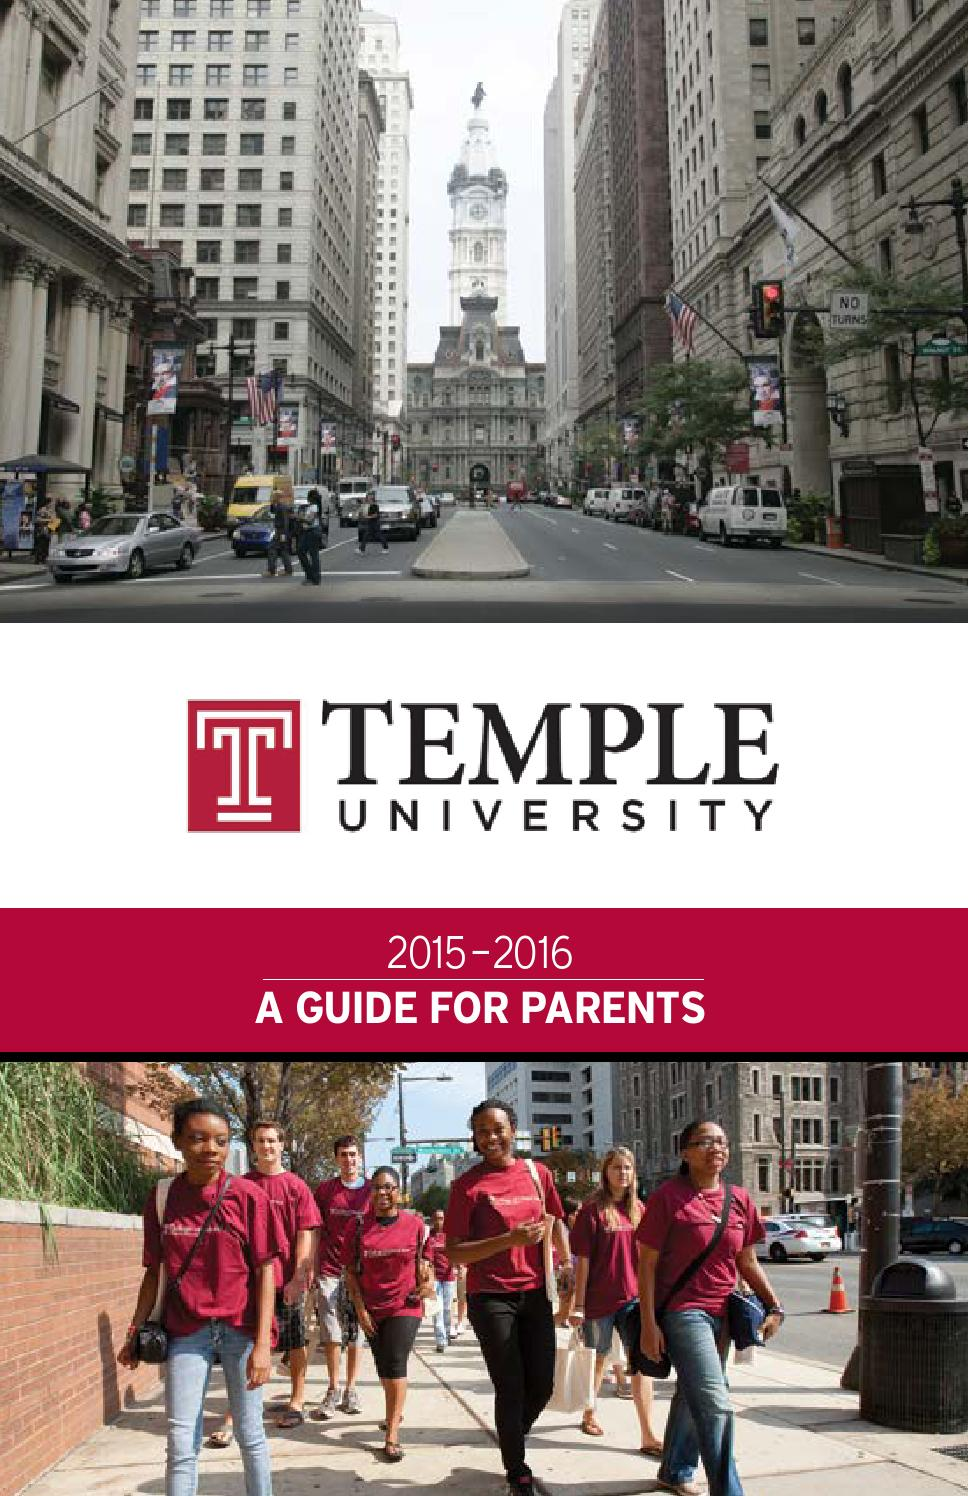 temple university application essay View temple university admissions statistics, acceptance rate, sat/act  test  scores and gpa for temple universitysee other colleges  templeedu/apply.